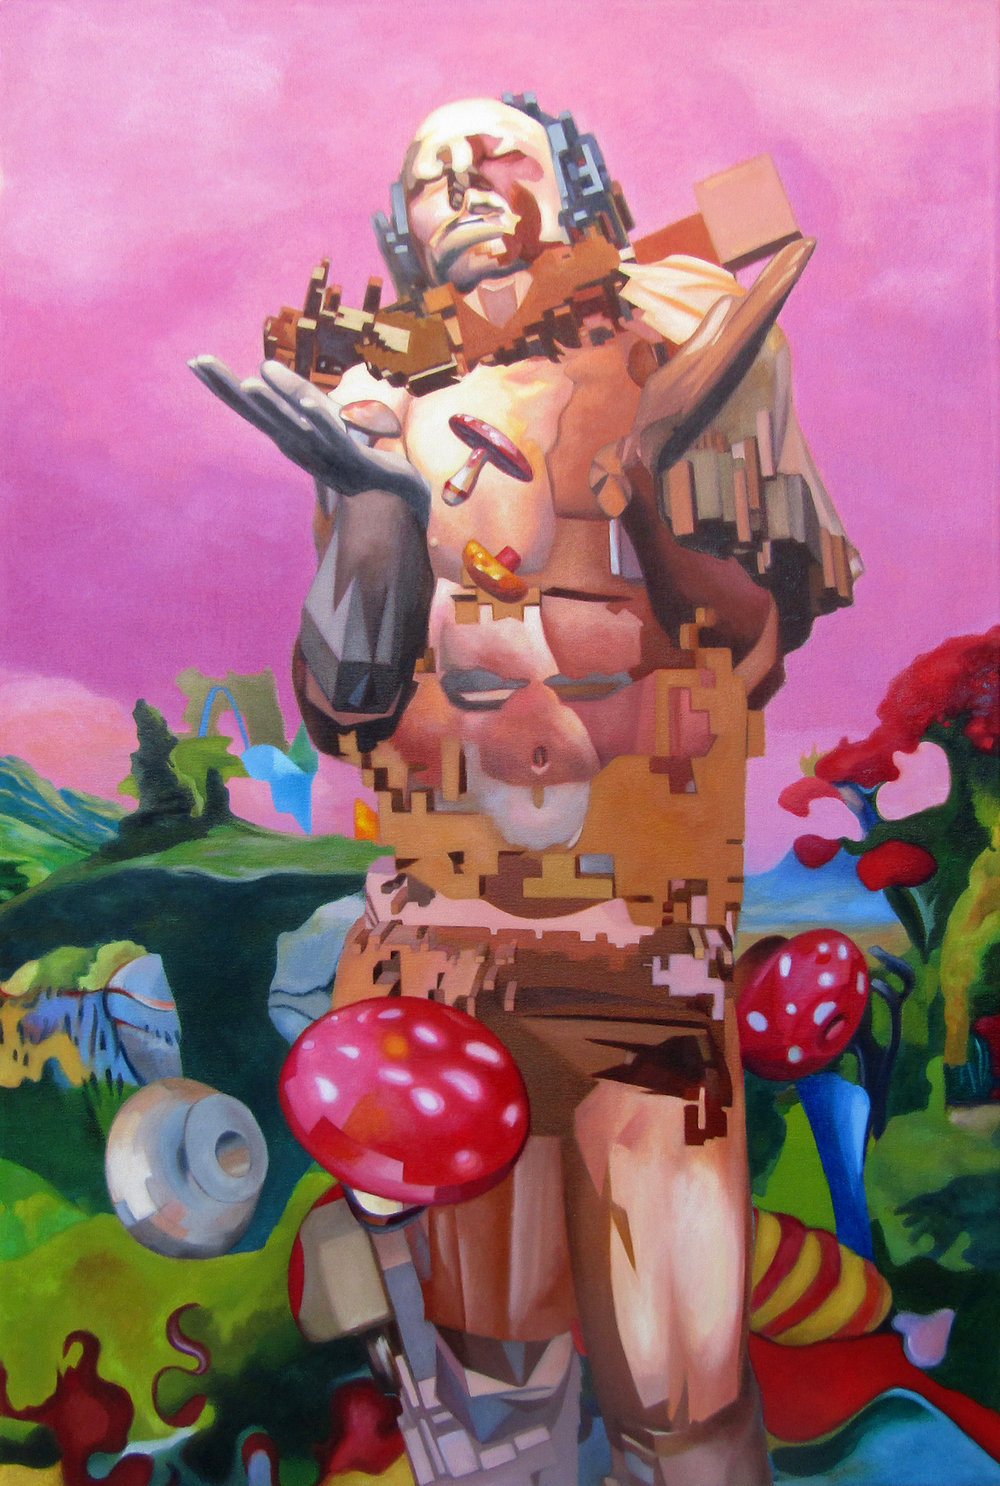 Man With Mushrooms, 2015-17